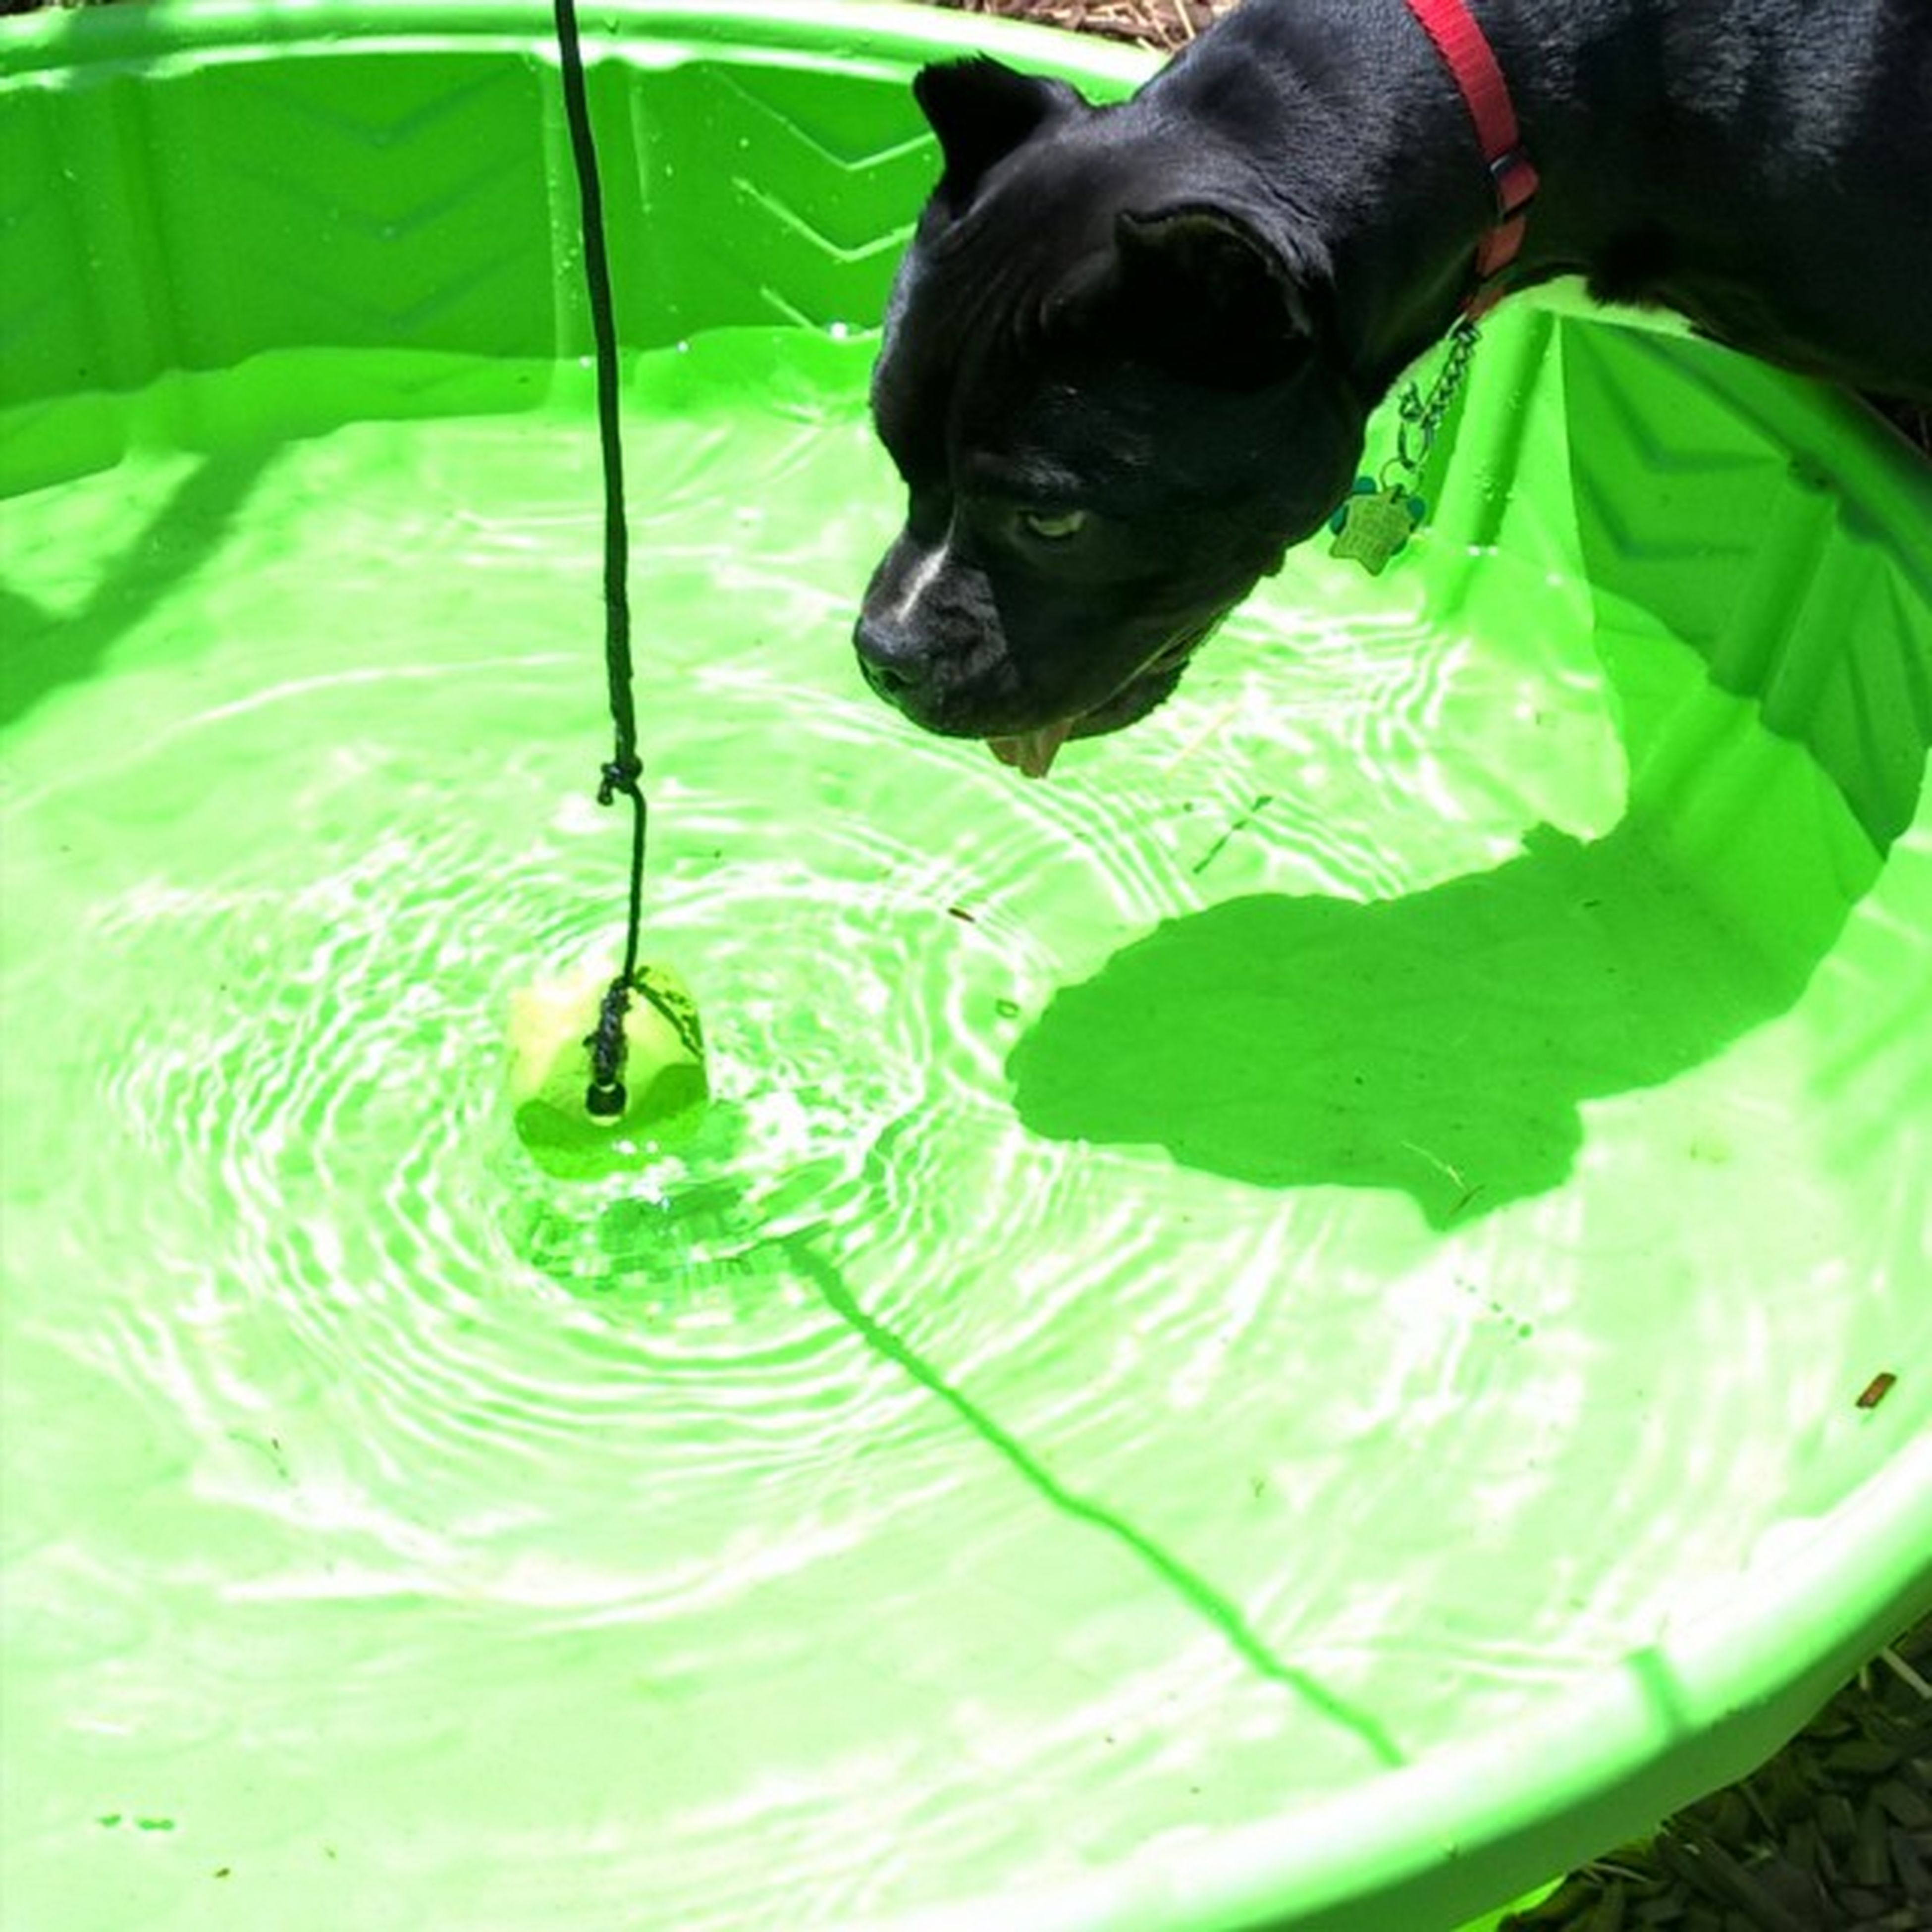 water, one animal, green color, pets, animal themes, close-up, dog, domestic animals, high angle view, freshness, indoors, wet, leaf, part of, no people, reflection, refreshment, drop, mammal, day